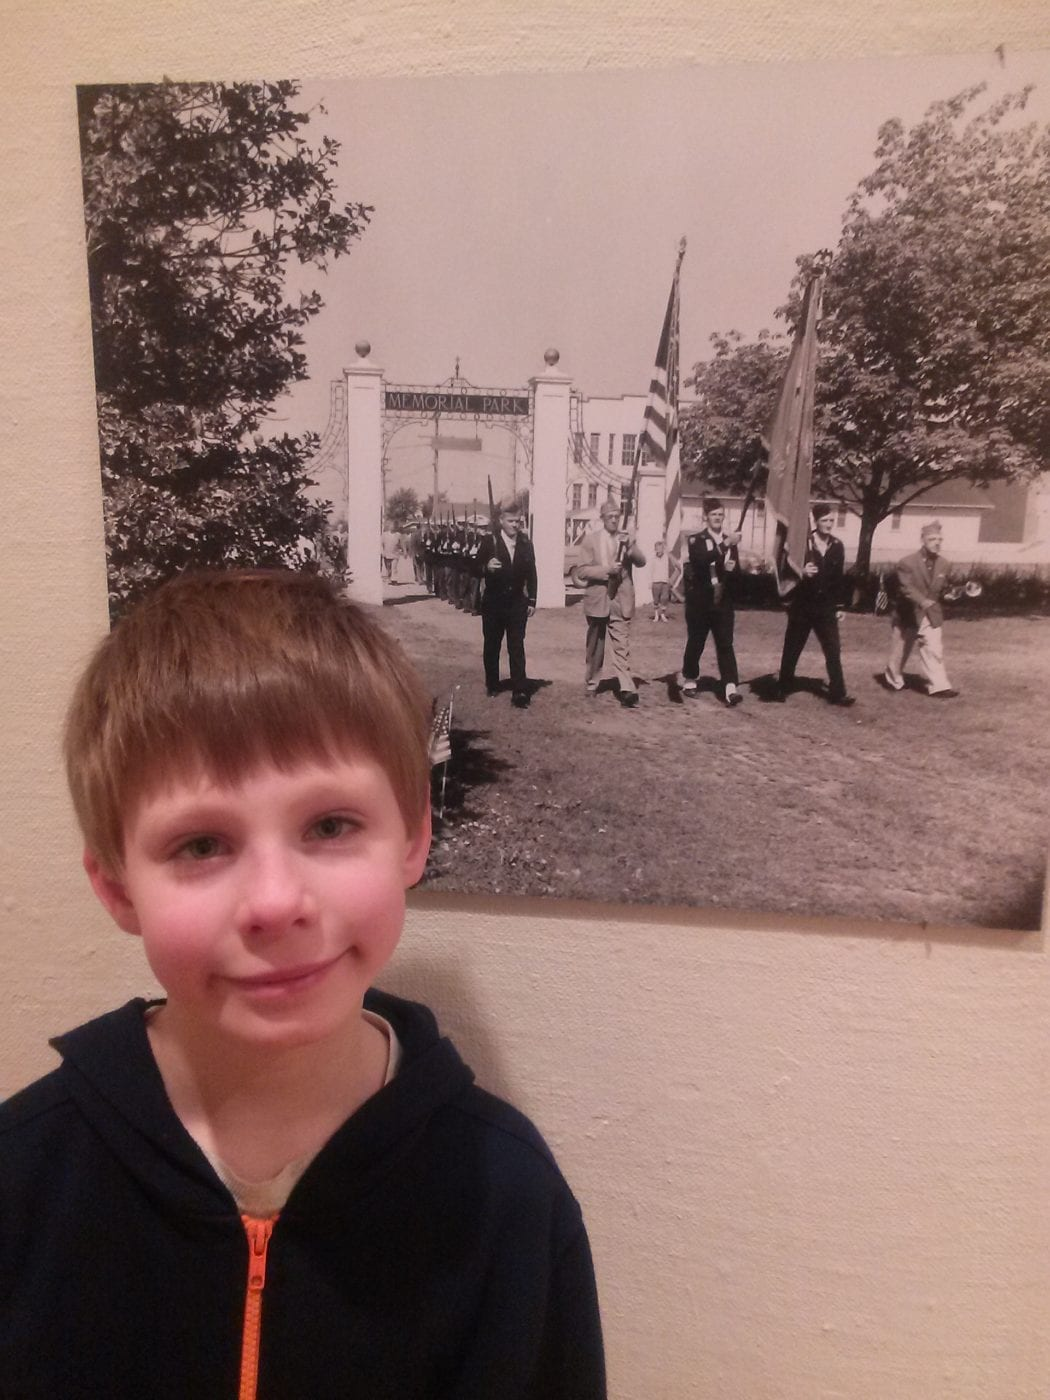 Histortical photo at Old City Hall, Whatcom Museum